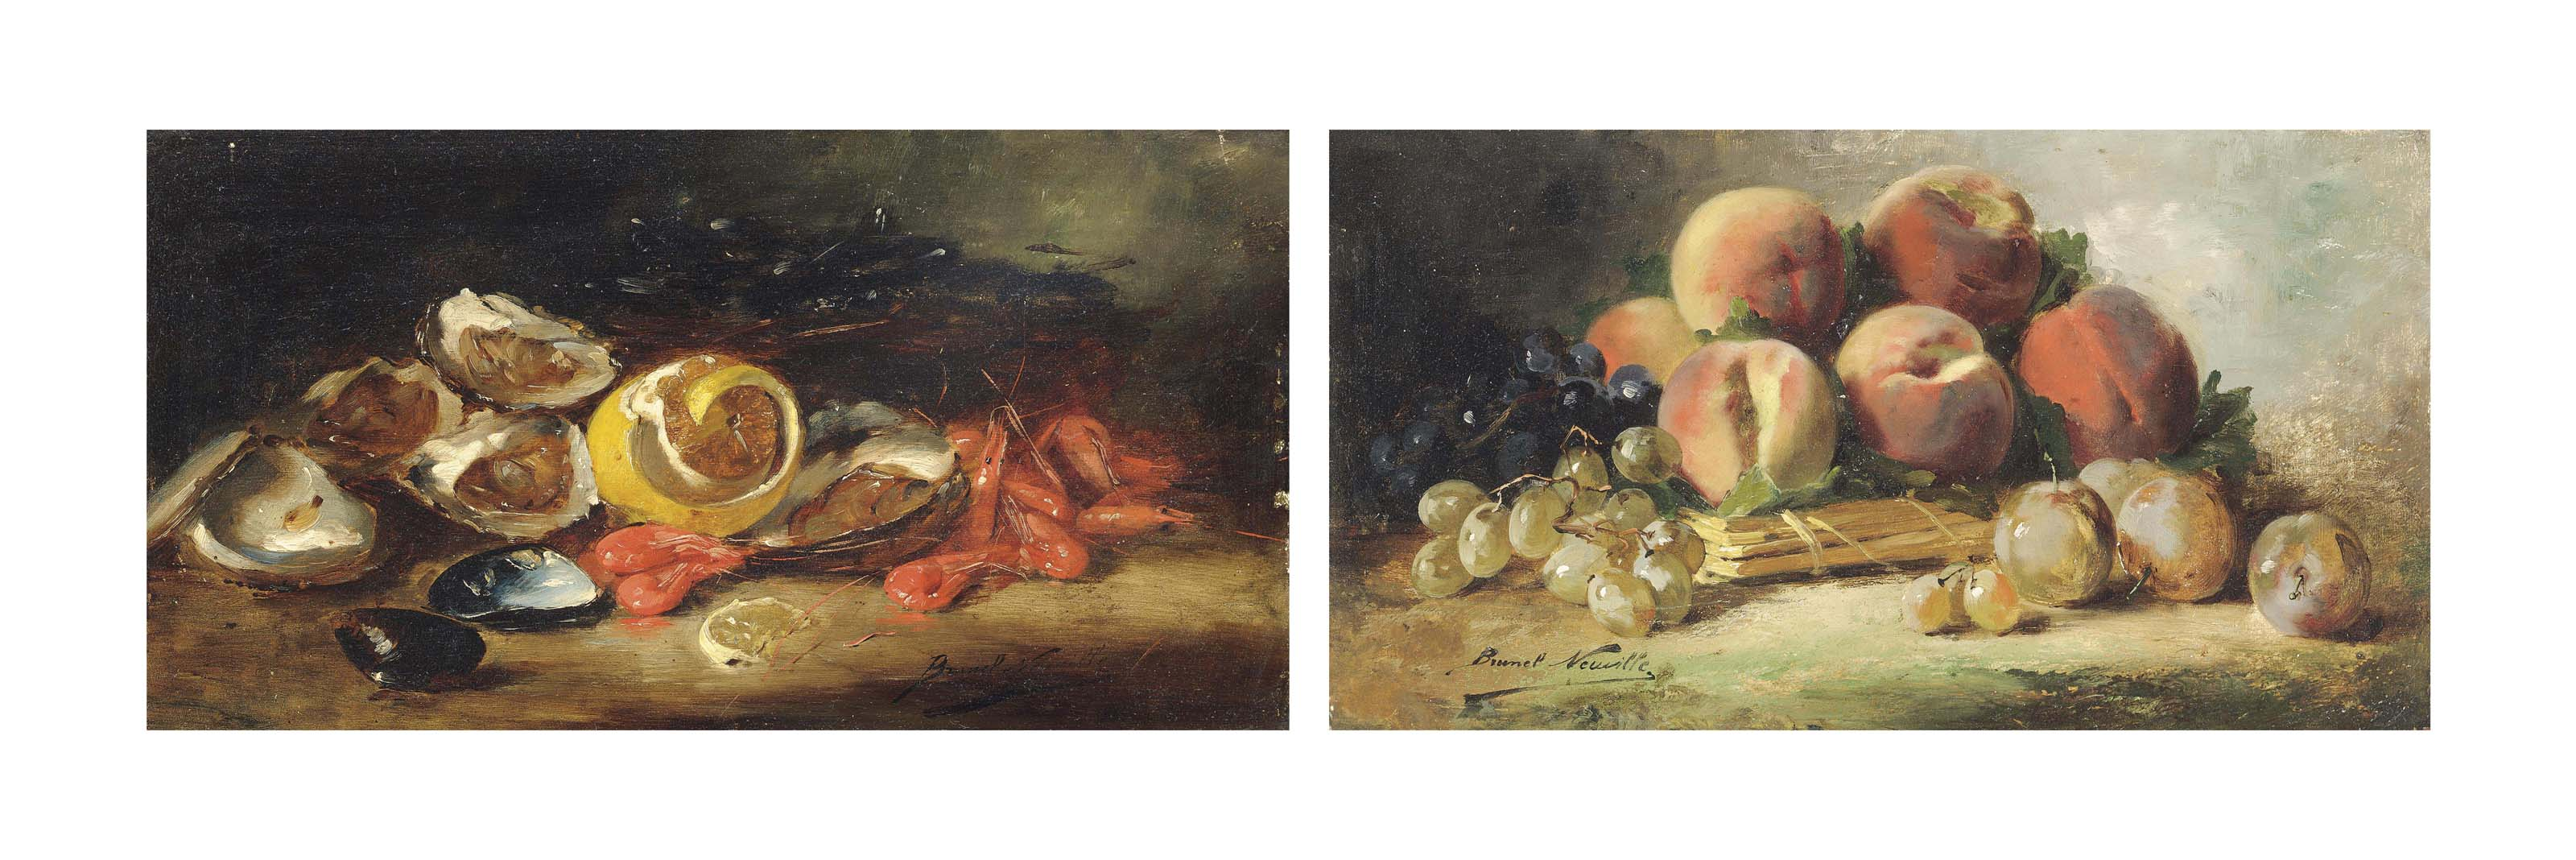 Oysters, shrimps and mussels with a lemon; and Peaches, grapes and plums